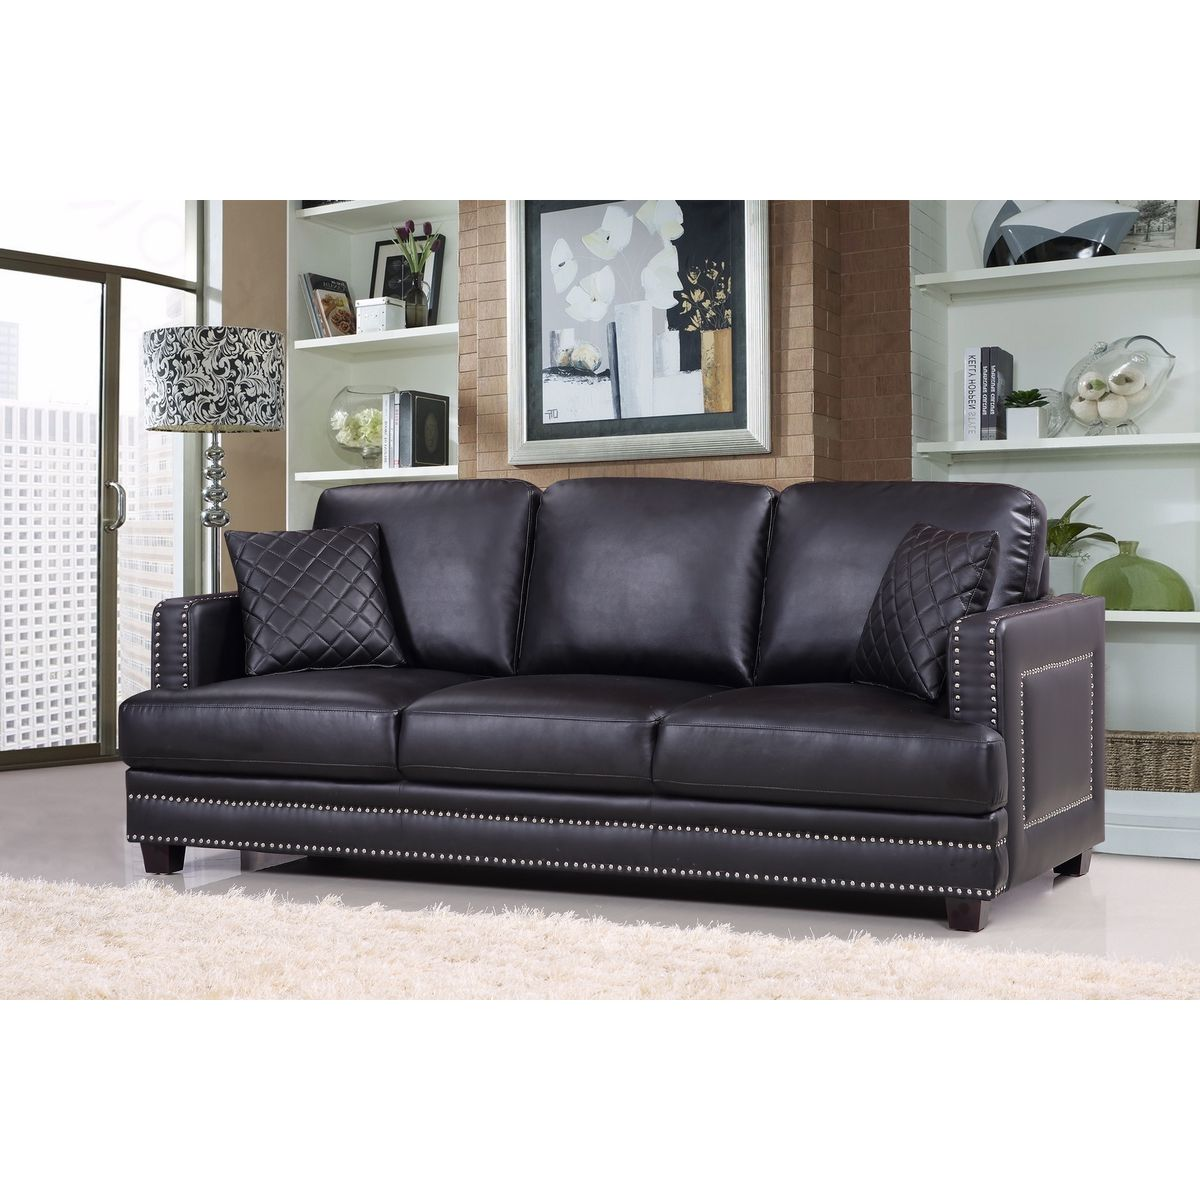 Meridian Furniture Ferrara Black Leather Sofa W/ Silver Nailhead U0026 Quilted  Pillows